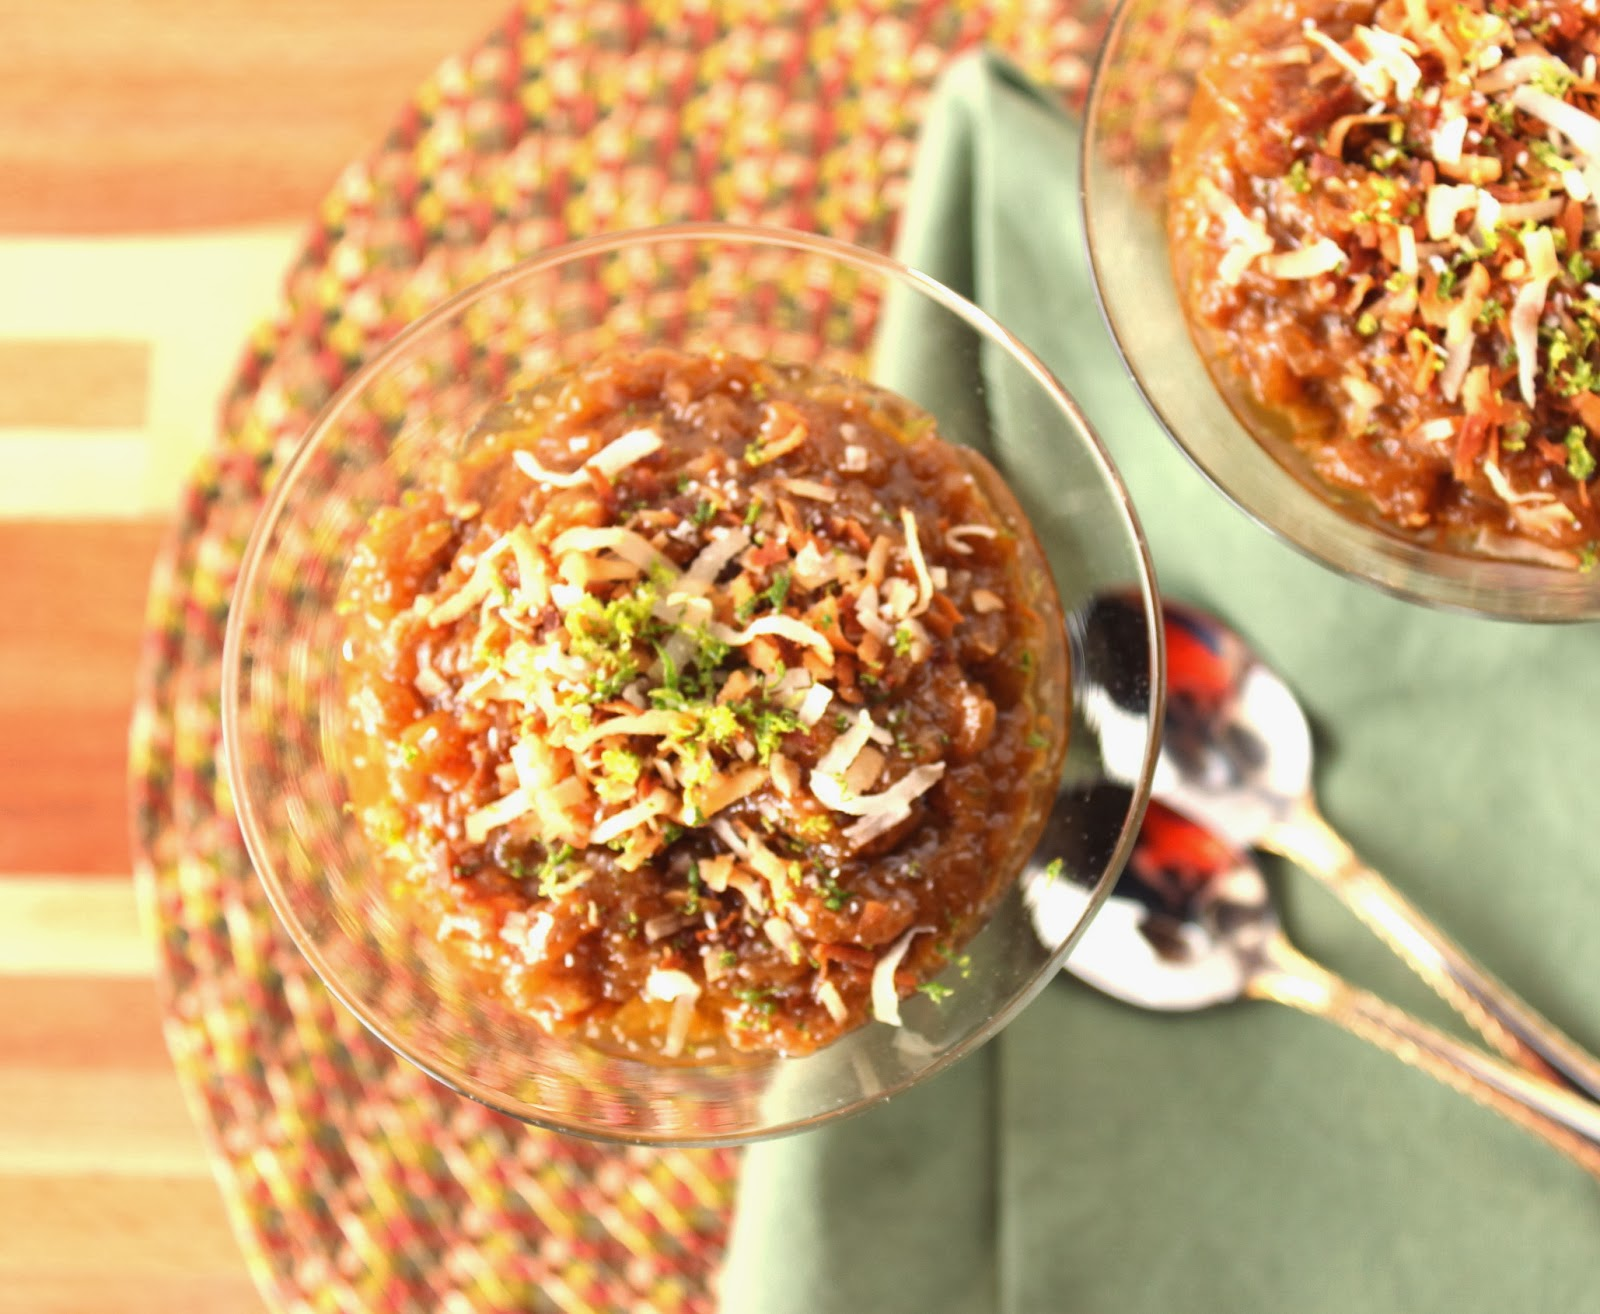 Kudos Kitchen By Renee - Caramelized Sticky Rice Pudding with Coconut and Lime Recipe